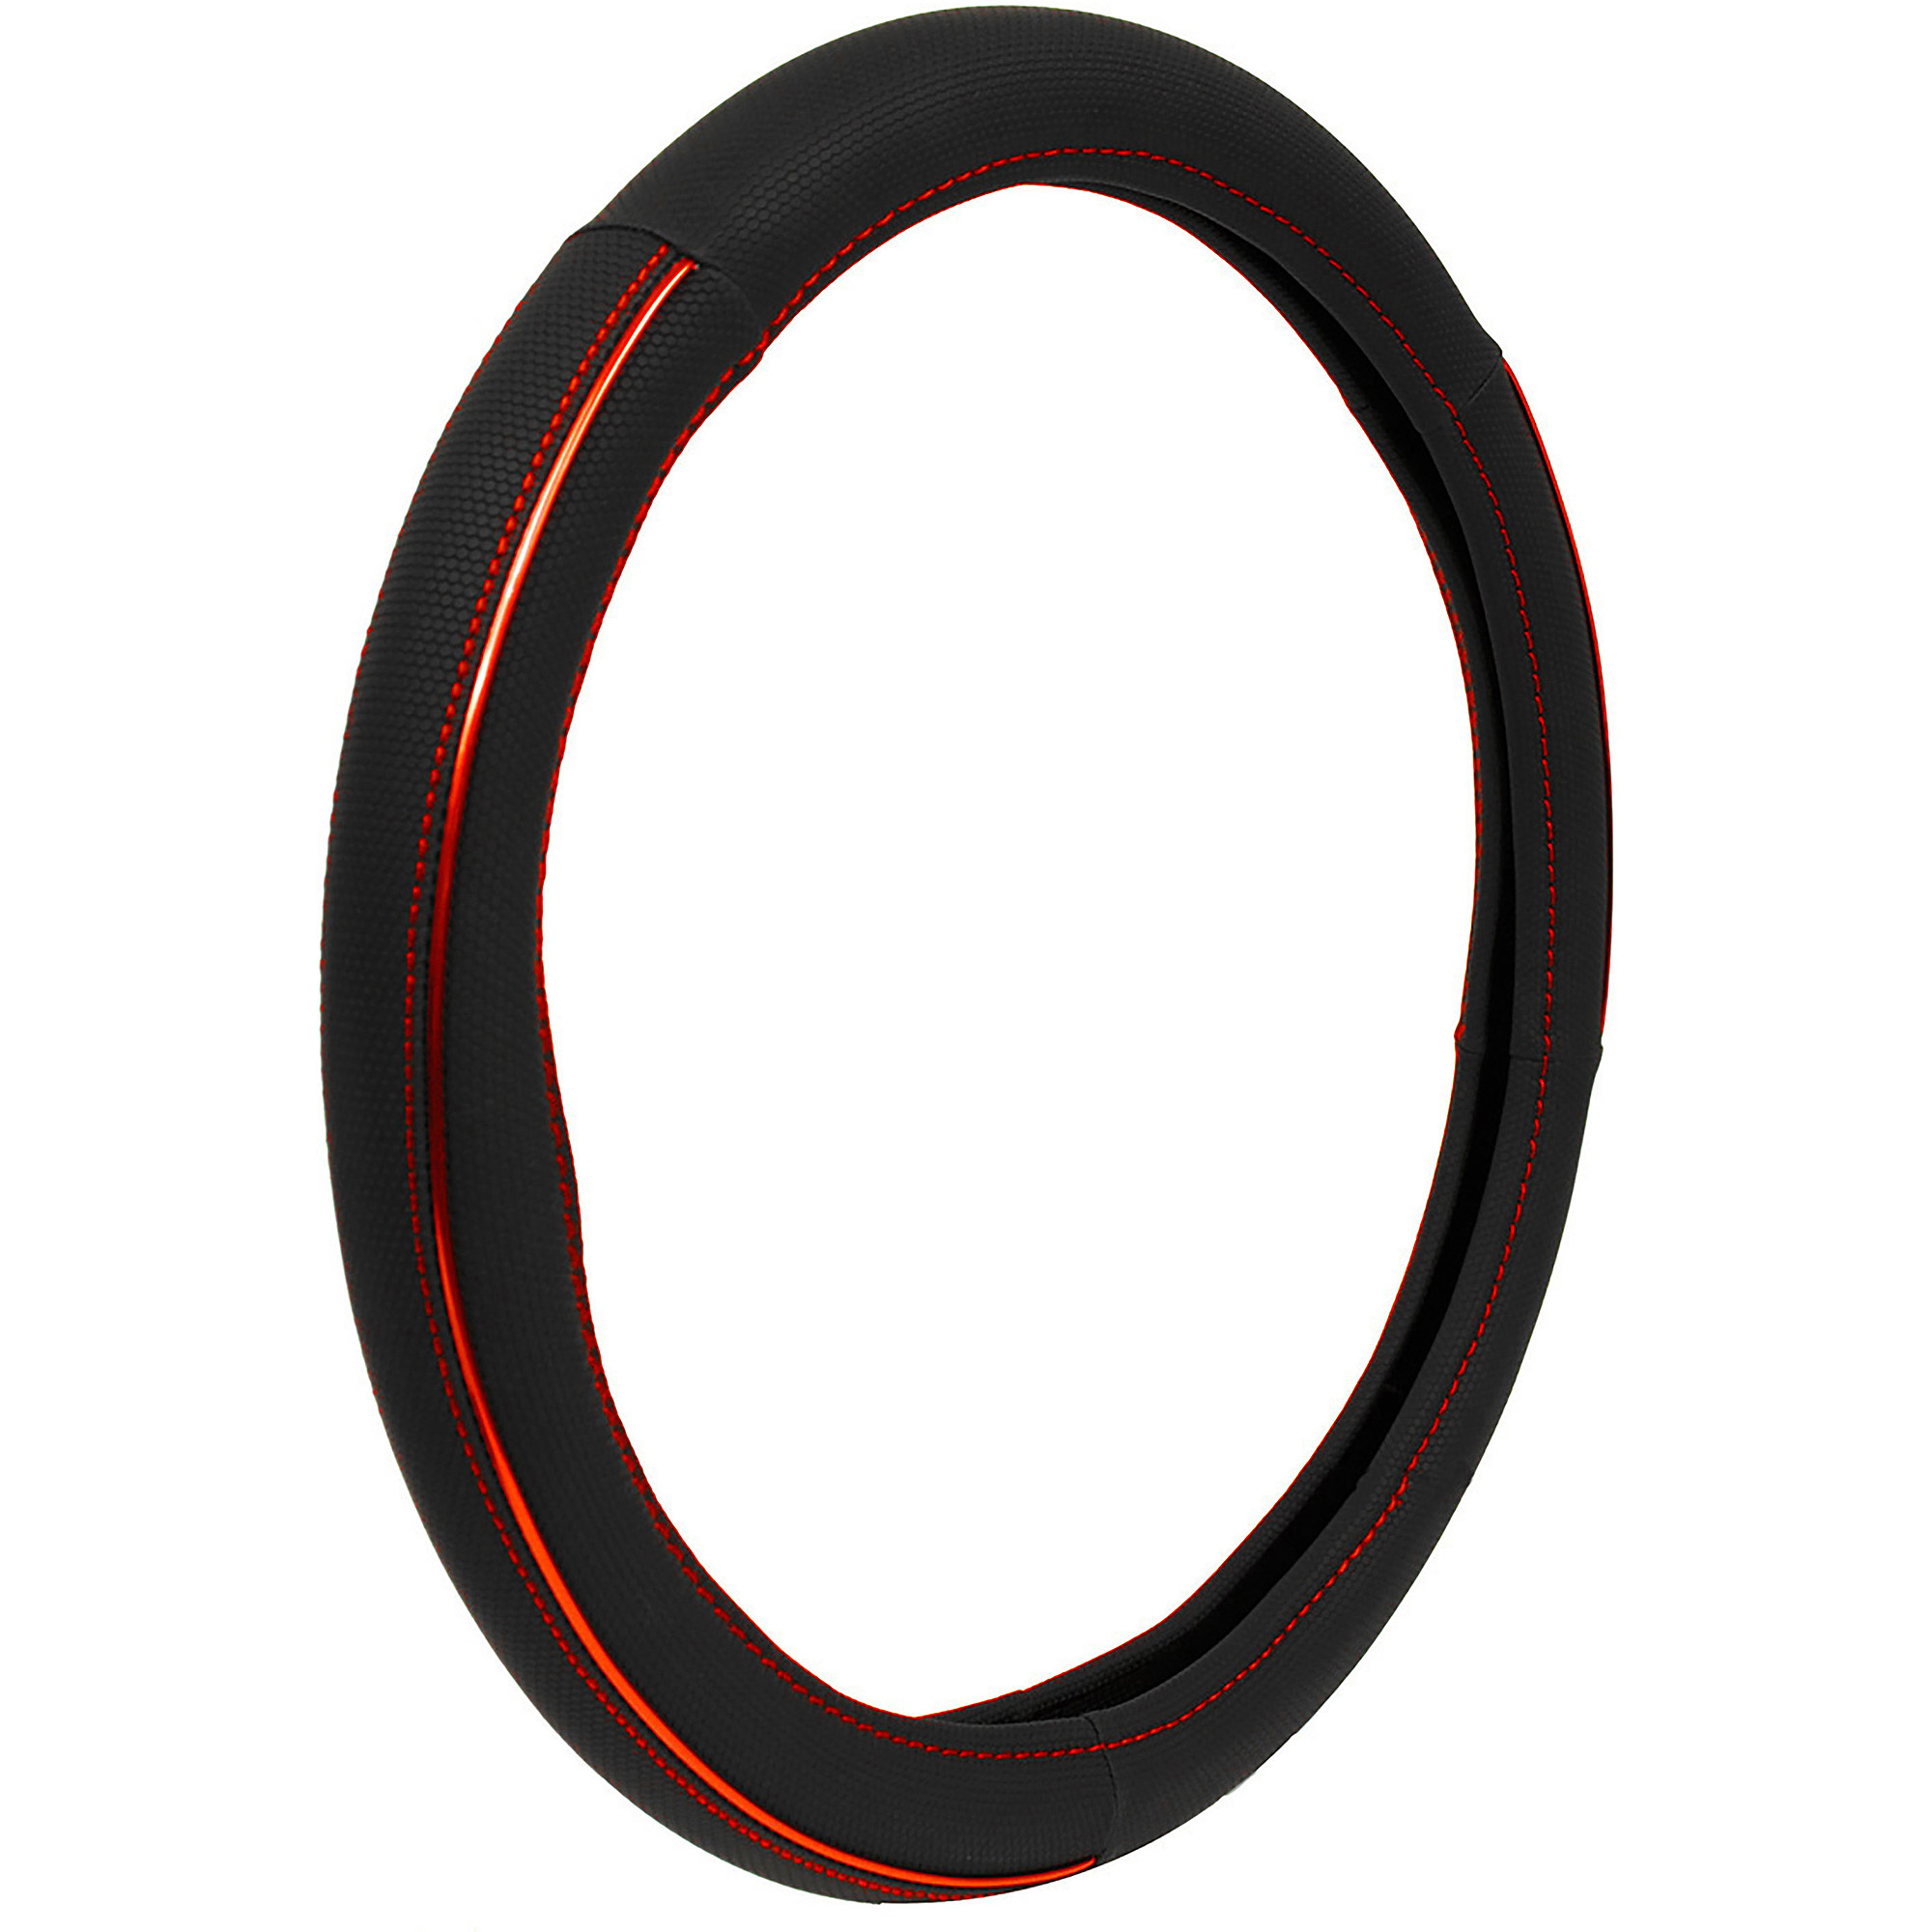 Auto Drive Steering Wheel Cover, Sport Red